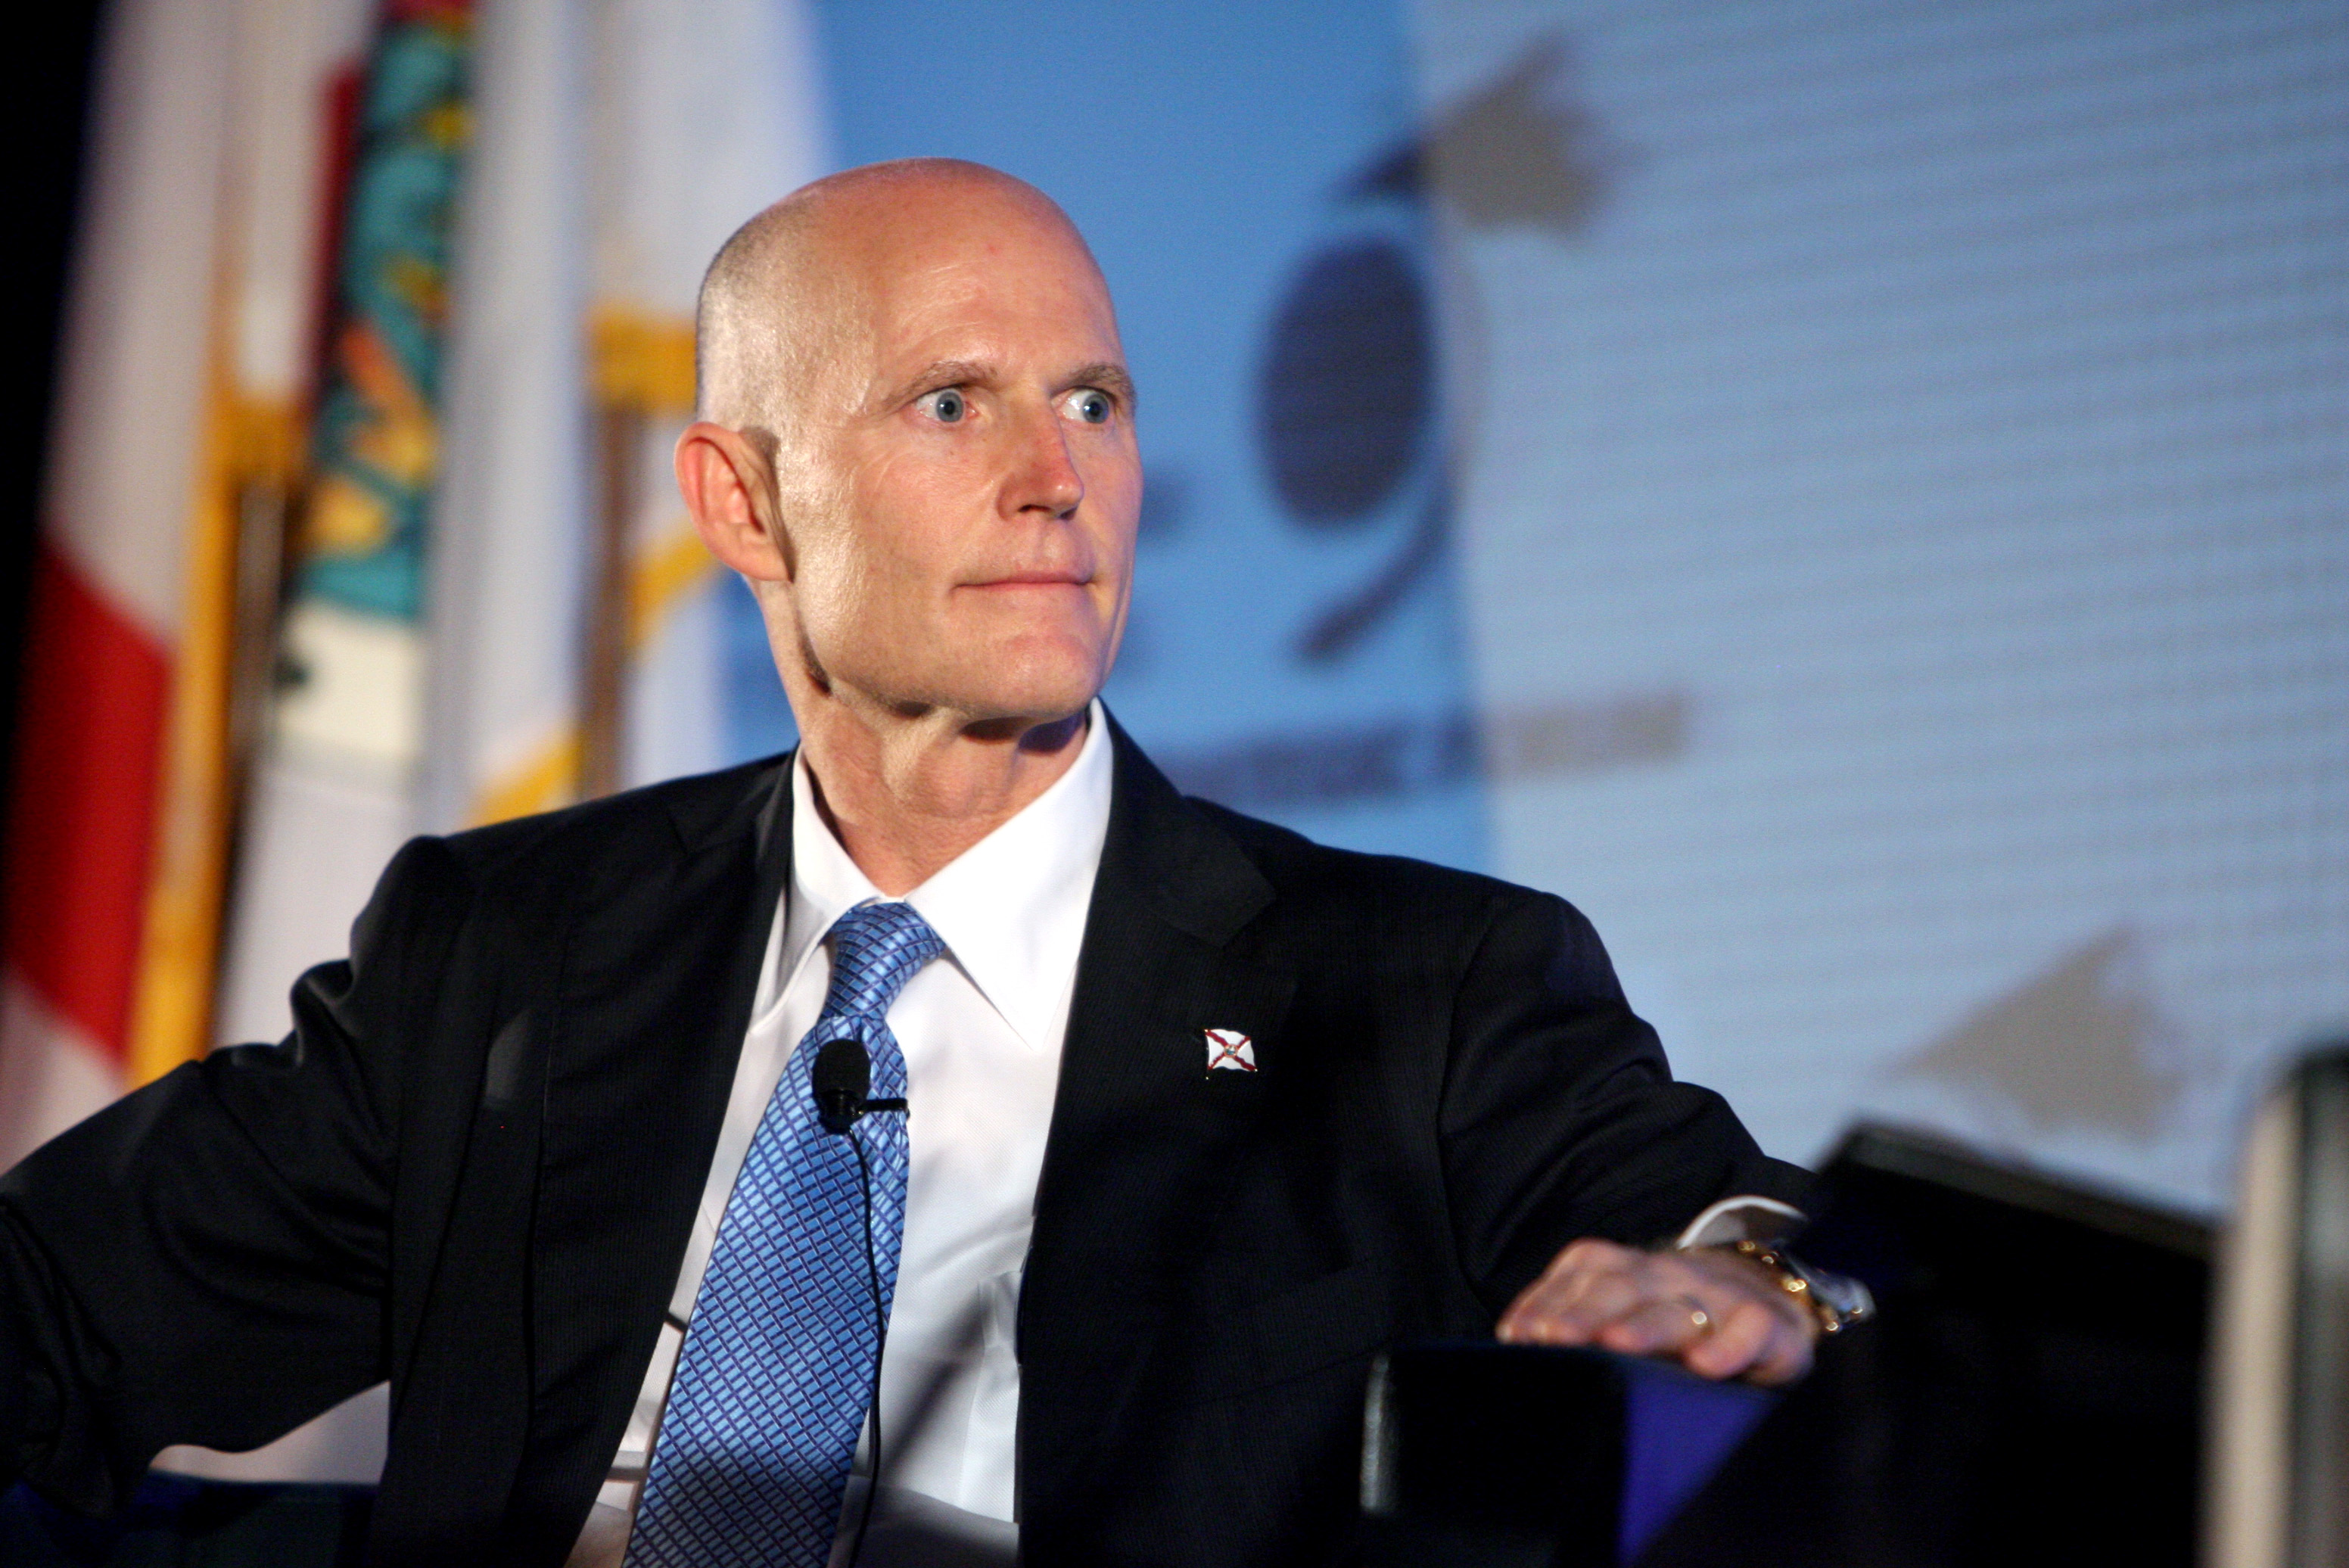 Florida Gov. Rick Scott has had ups and downs in his first 100 days.